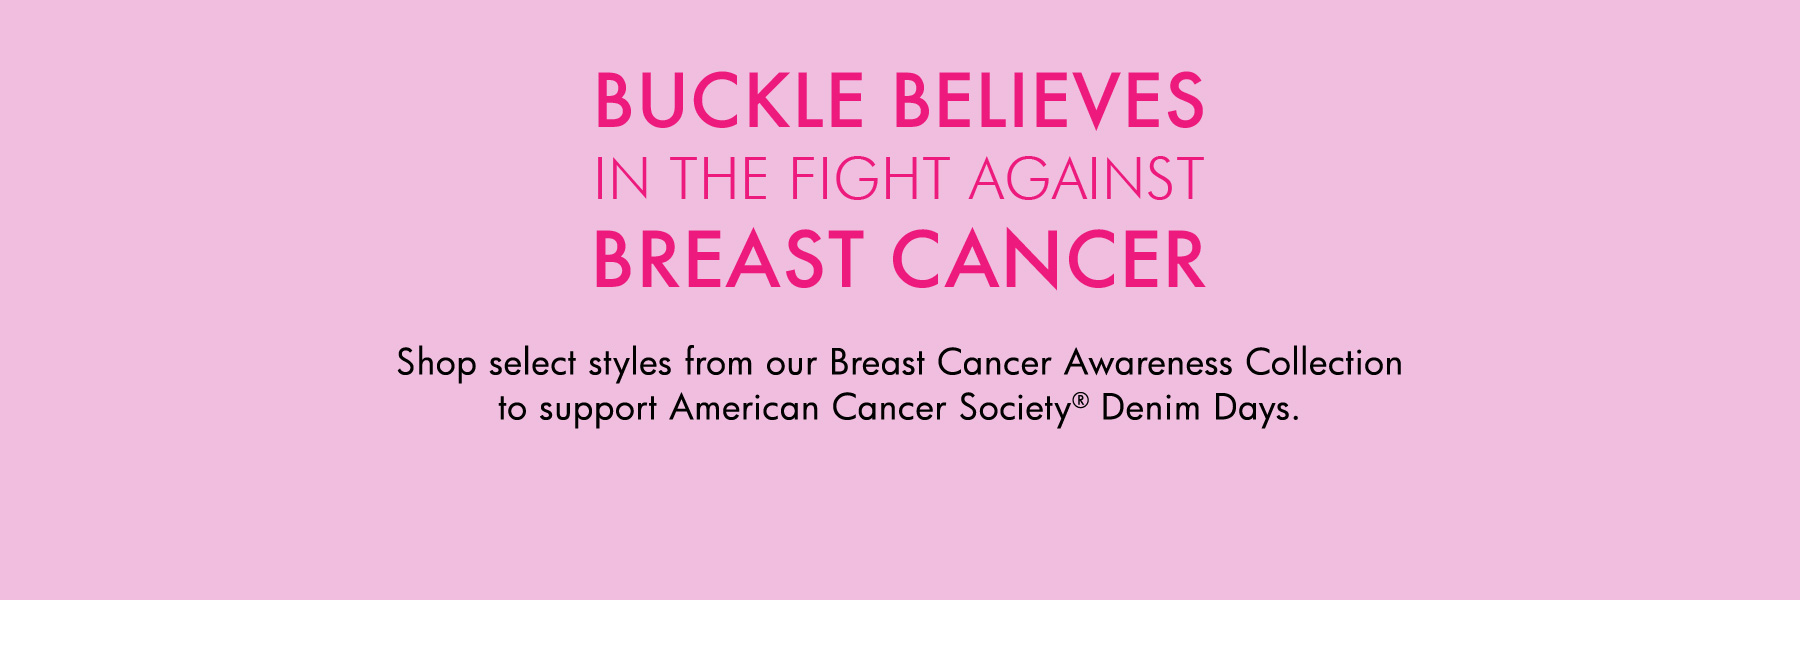 Buckle Believes In The Fight Against Breast Cancer